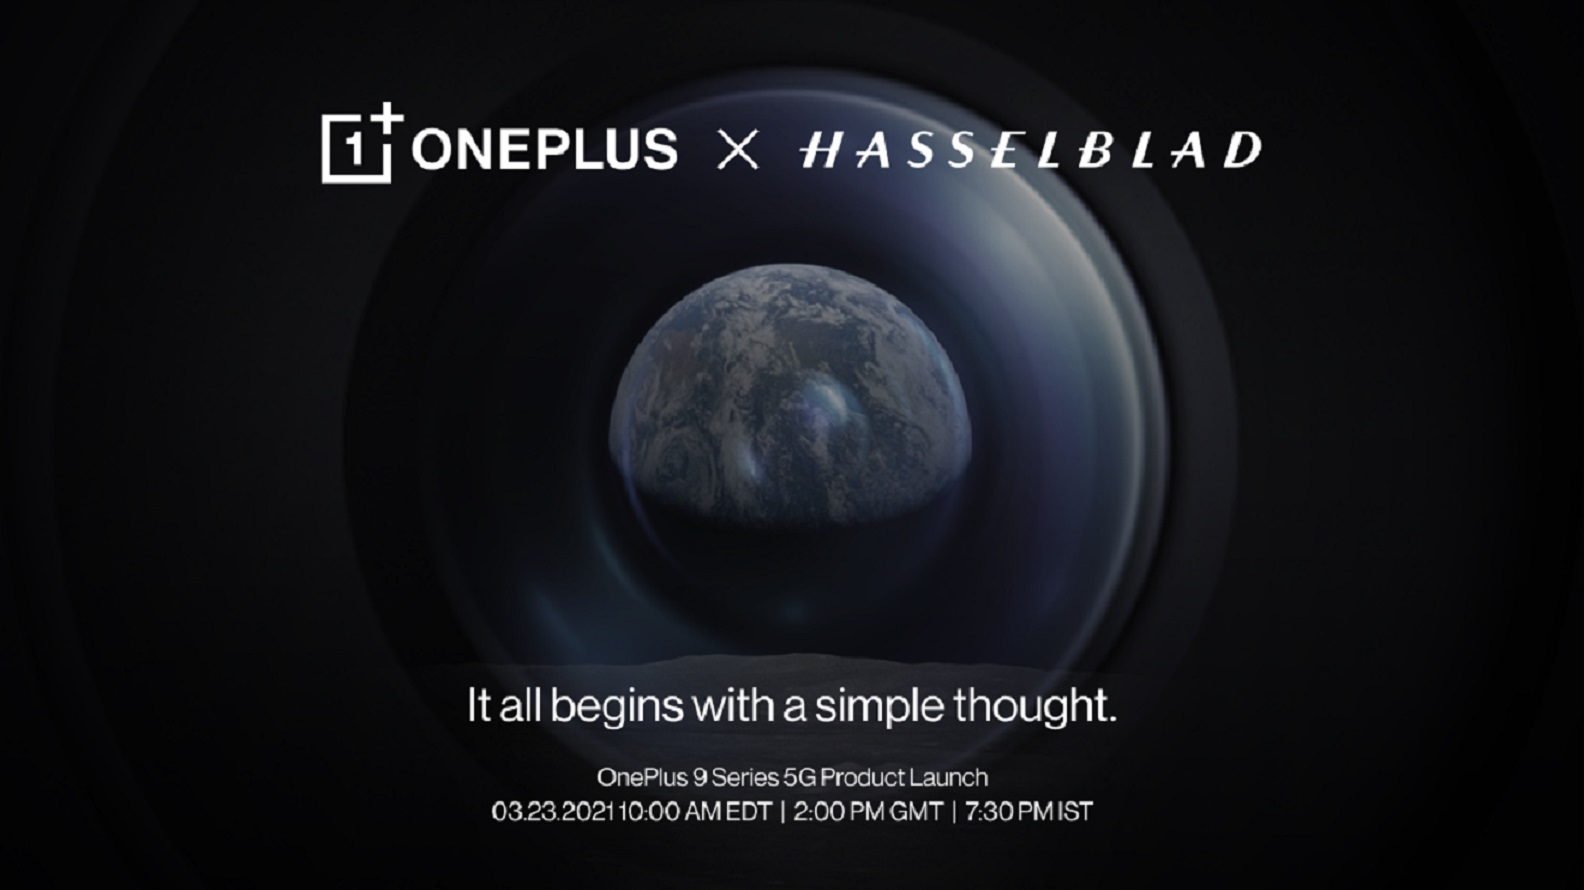 OnePlus and Hasselblad enter long-term Partnership to co-develop Smartphone Cameras